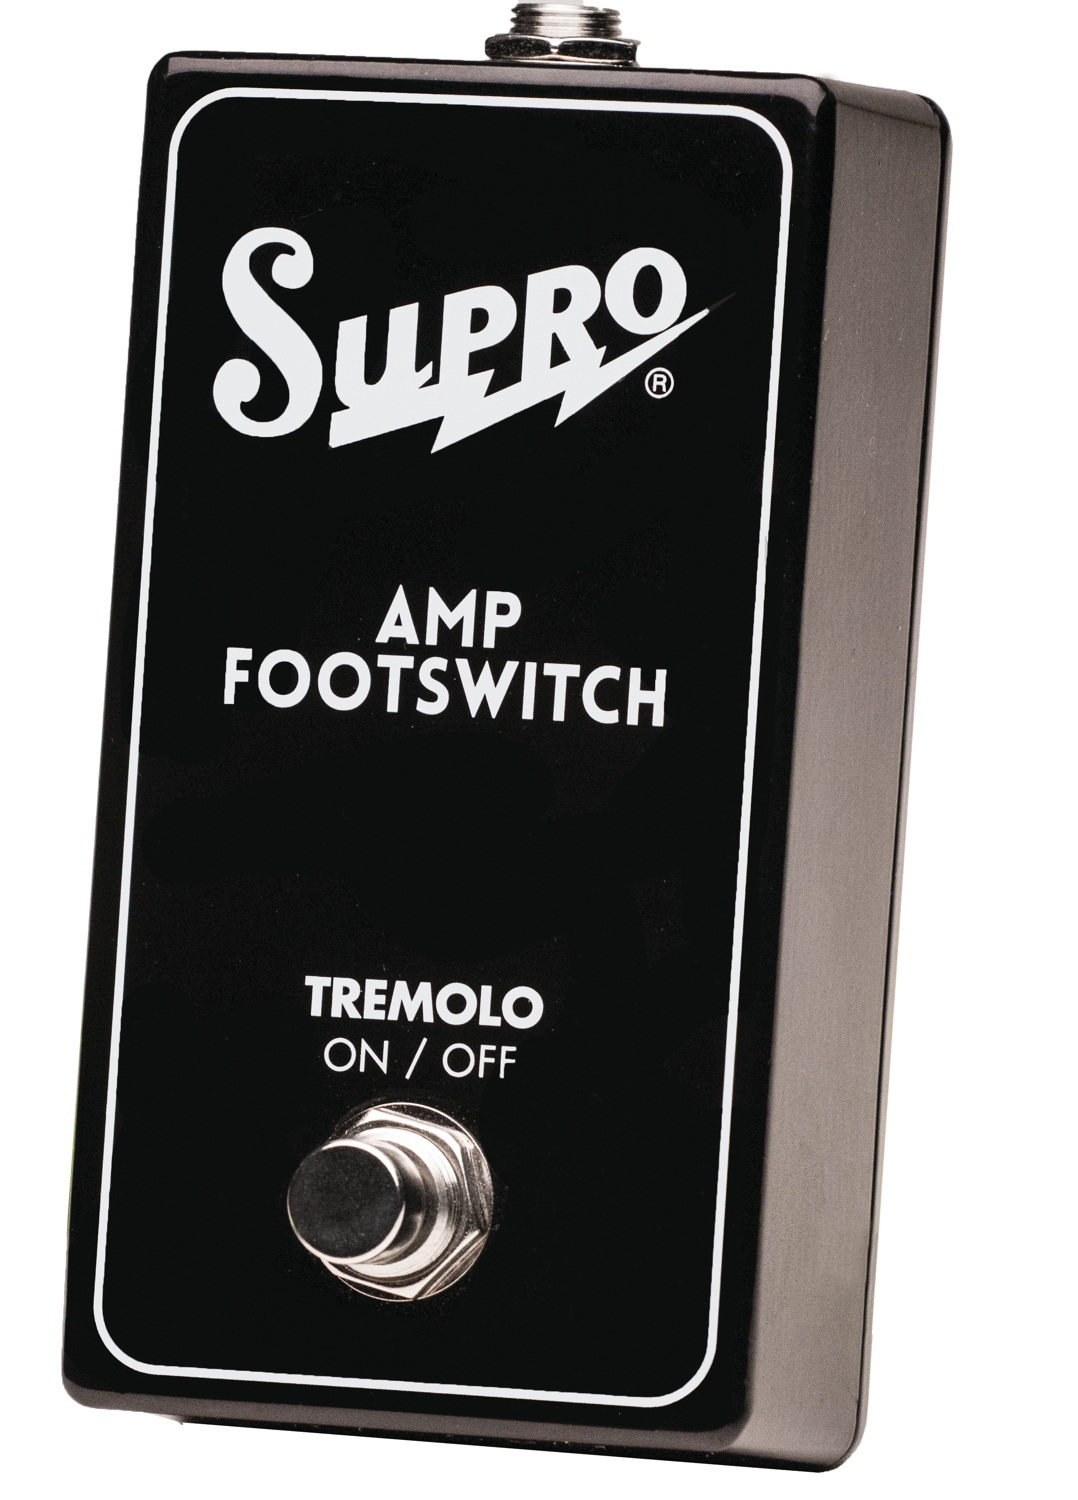 SF1 SINGLE FOOTSWITCH TREMOLO ON/OFF REMOTE